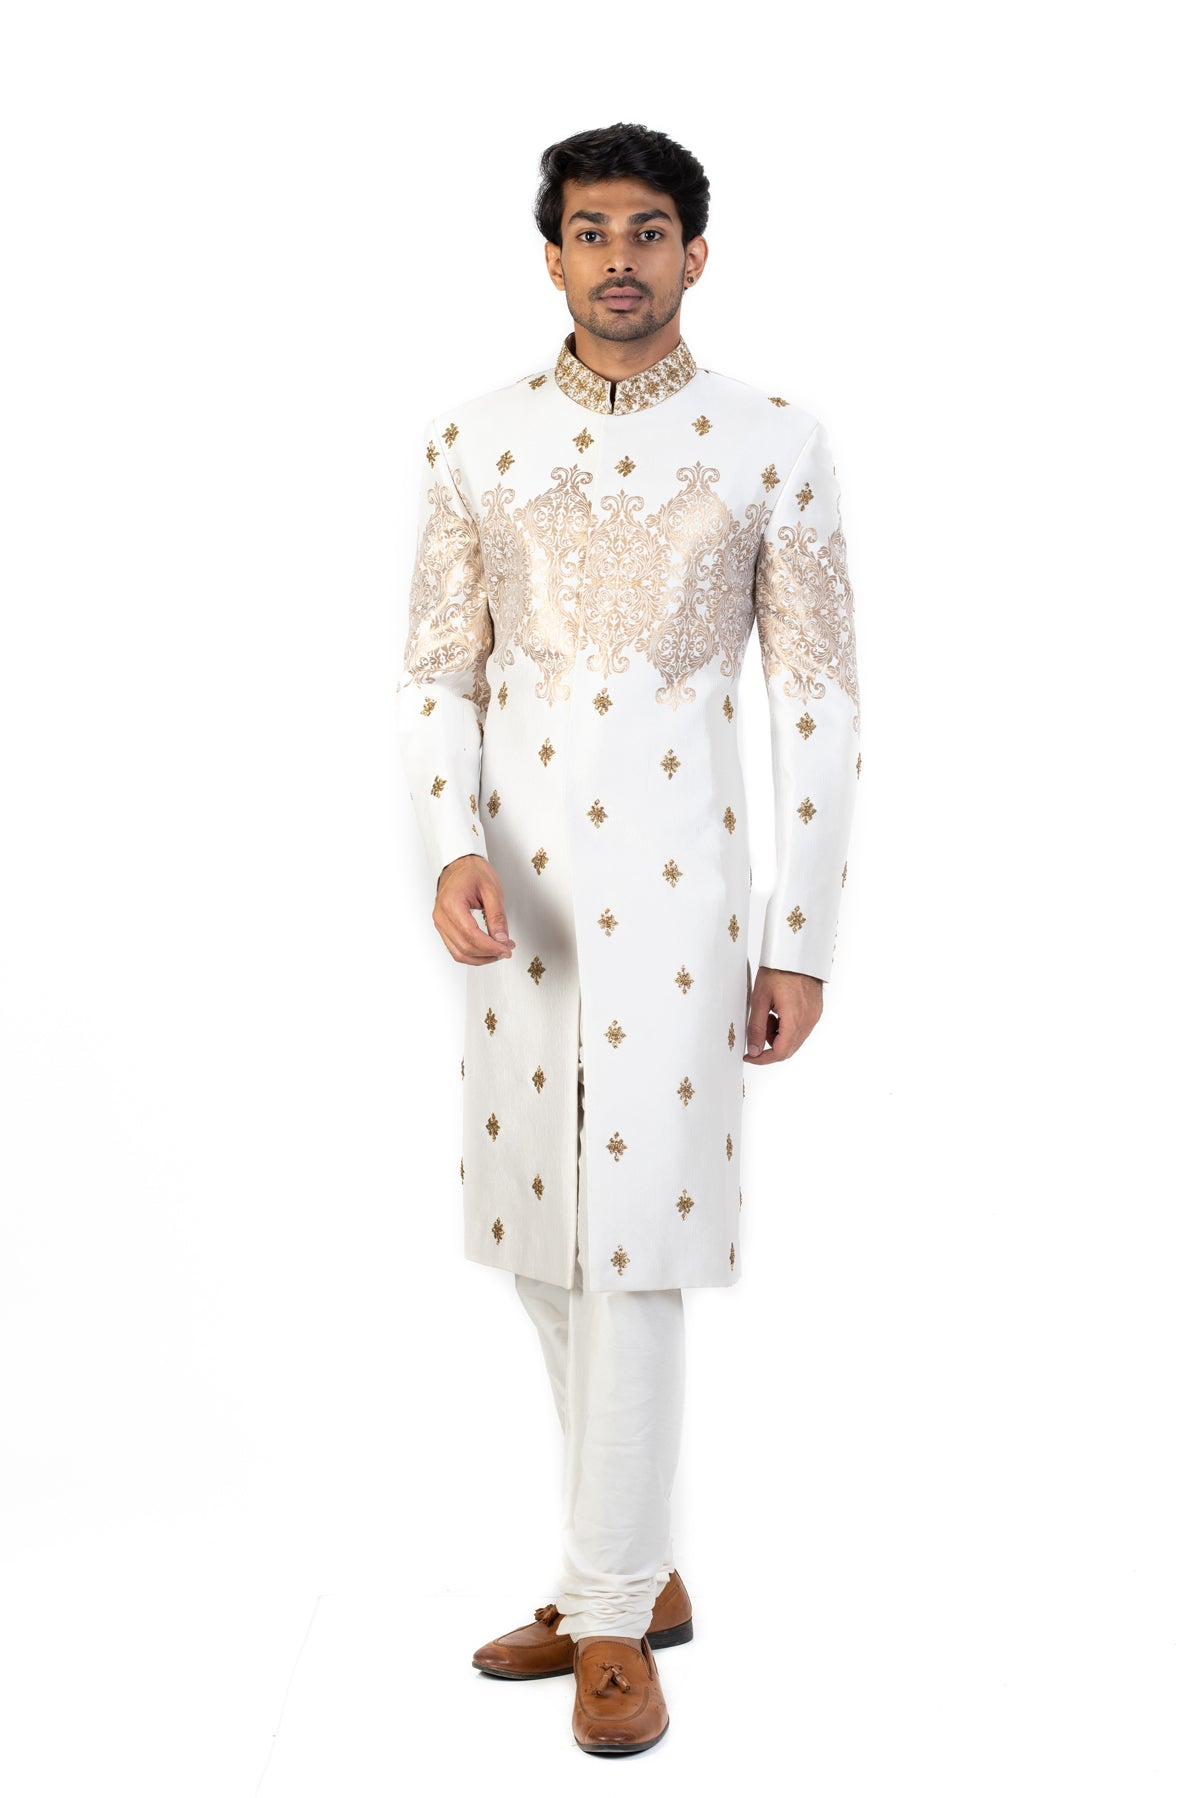 White and Gold Sherwani With Embroidered Motifs